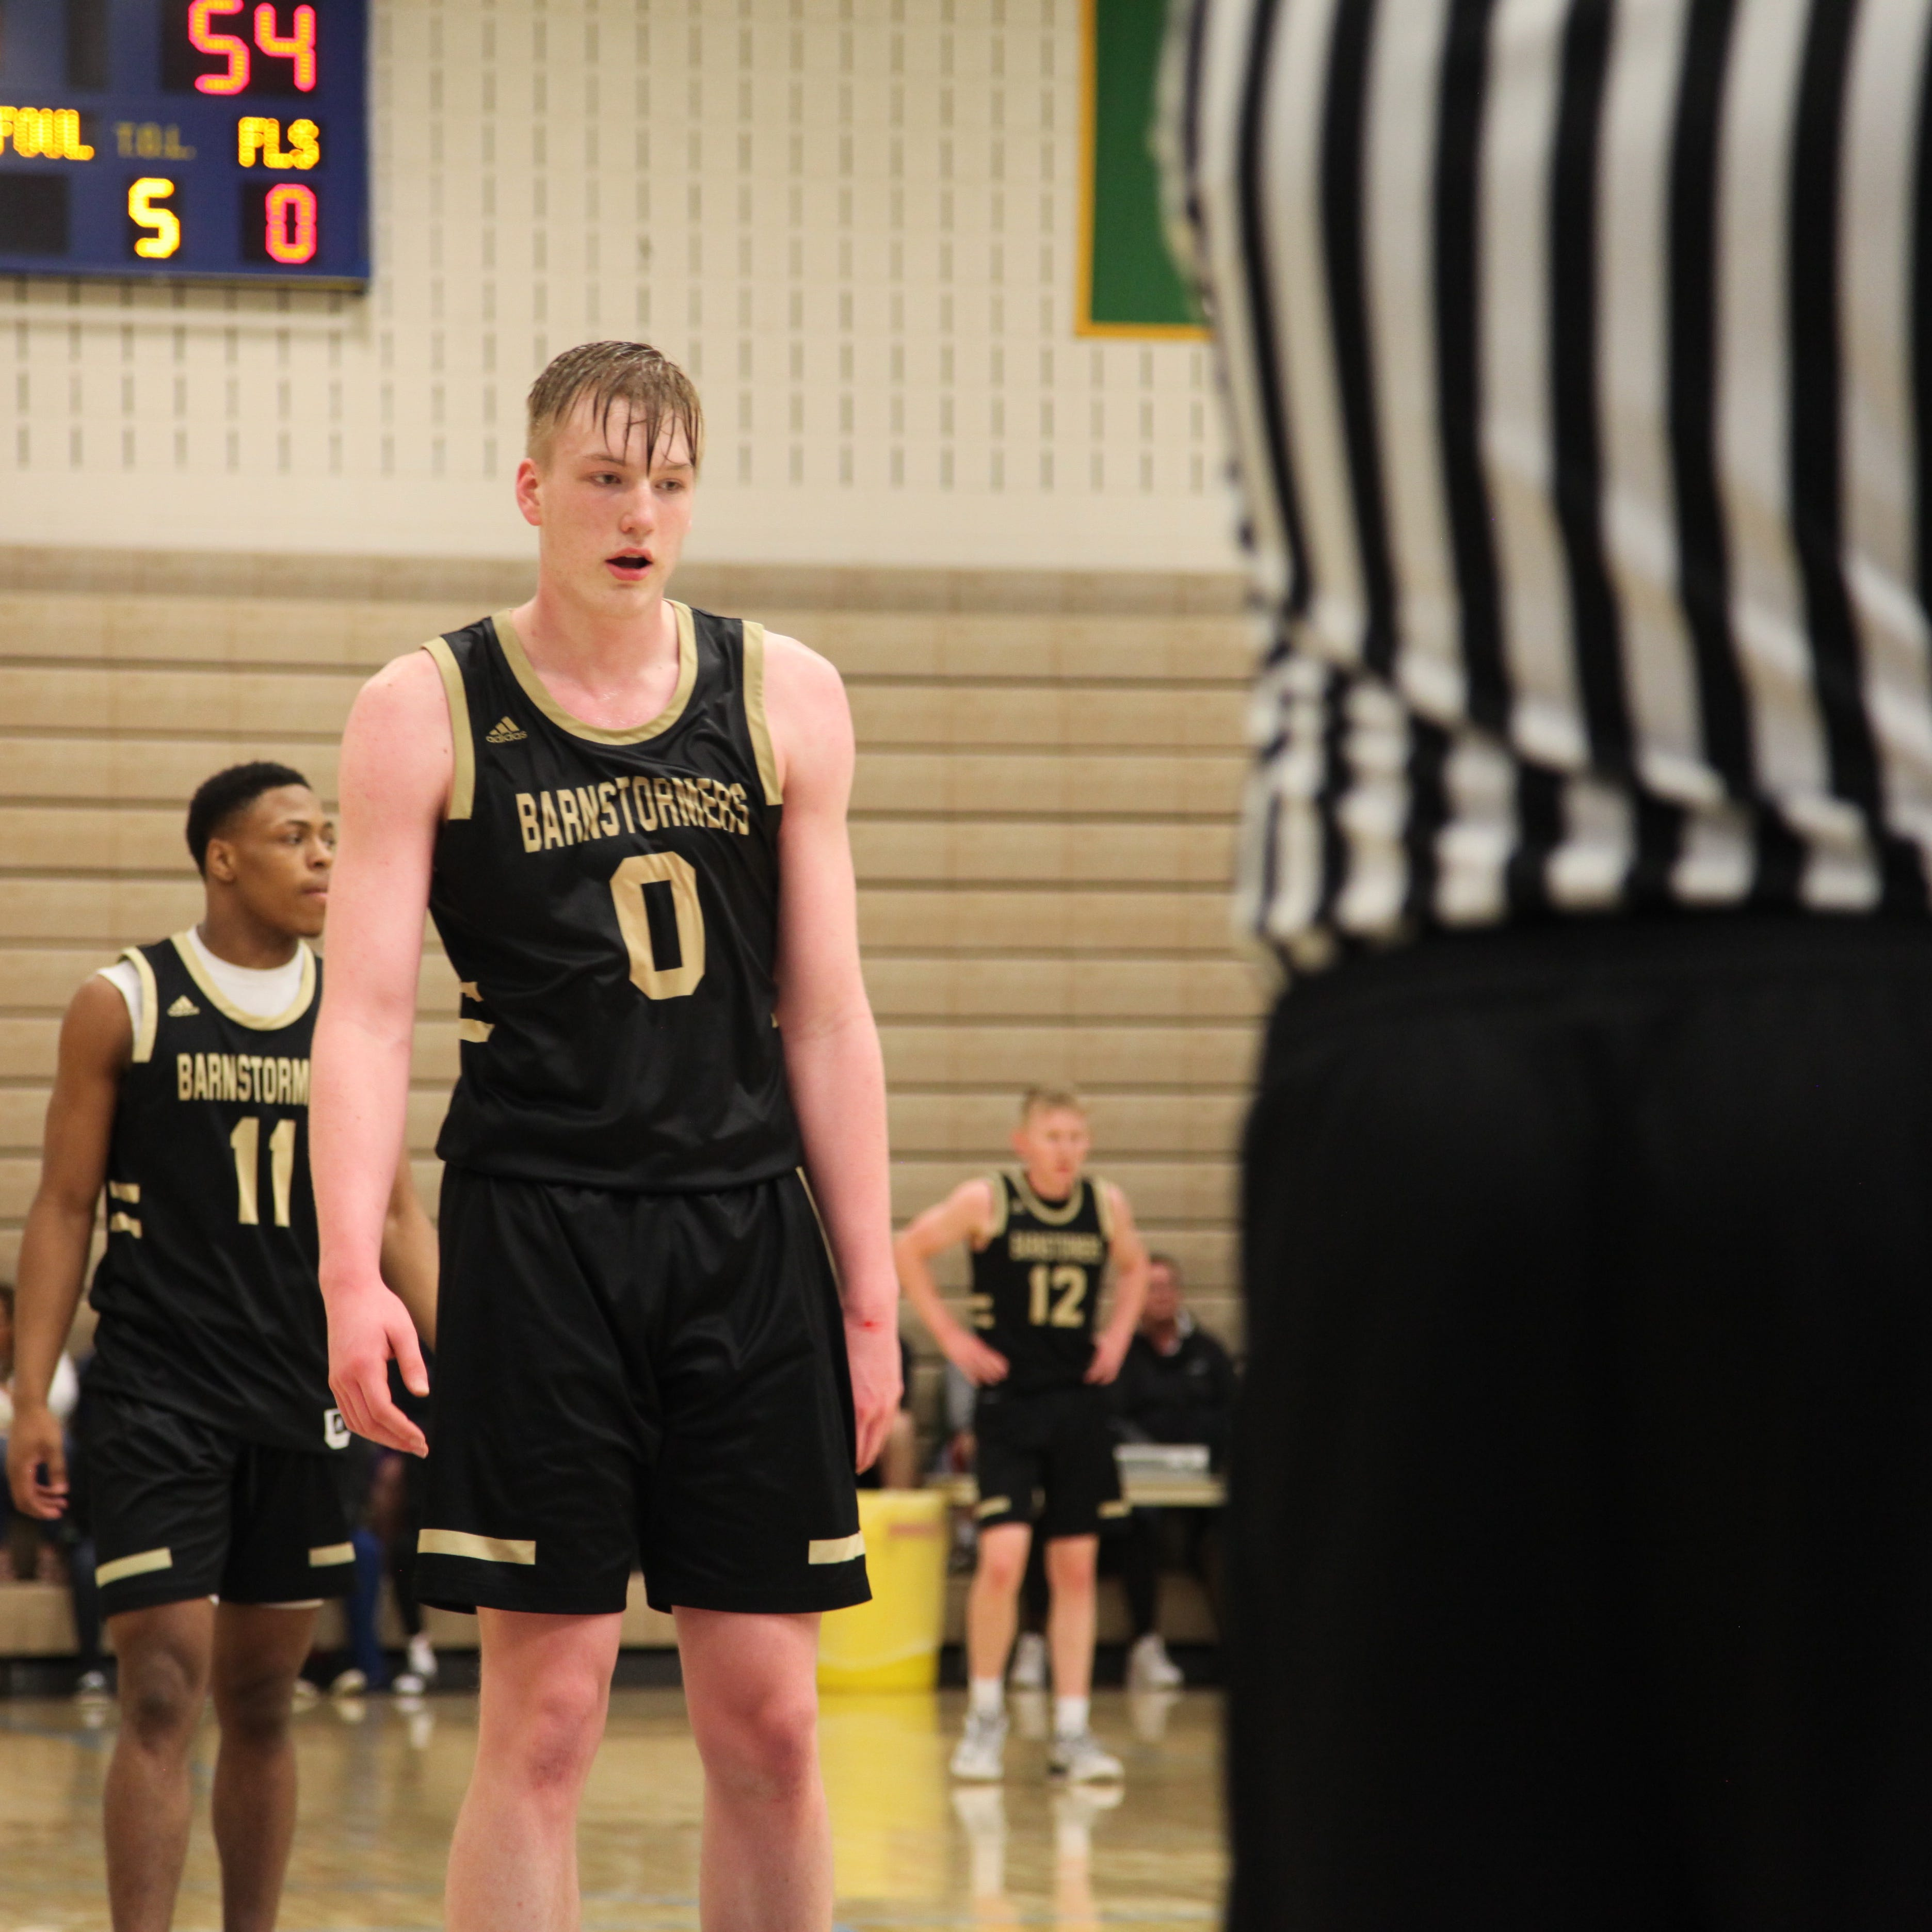 Iowa basketball recruiting: Even Brauns' official visits, Emarion Ellis' budding potential and more